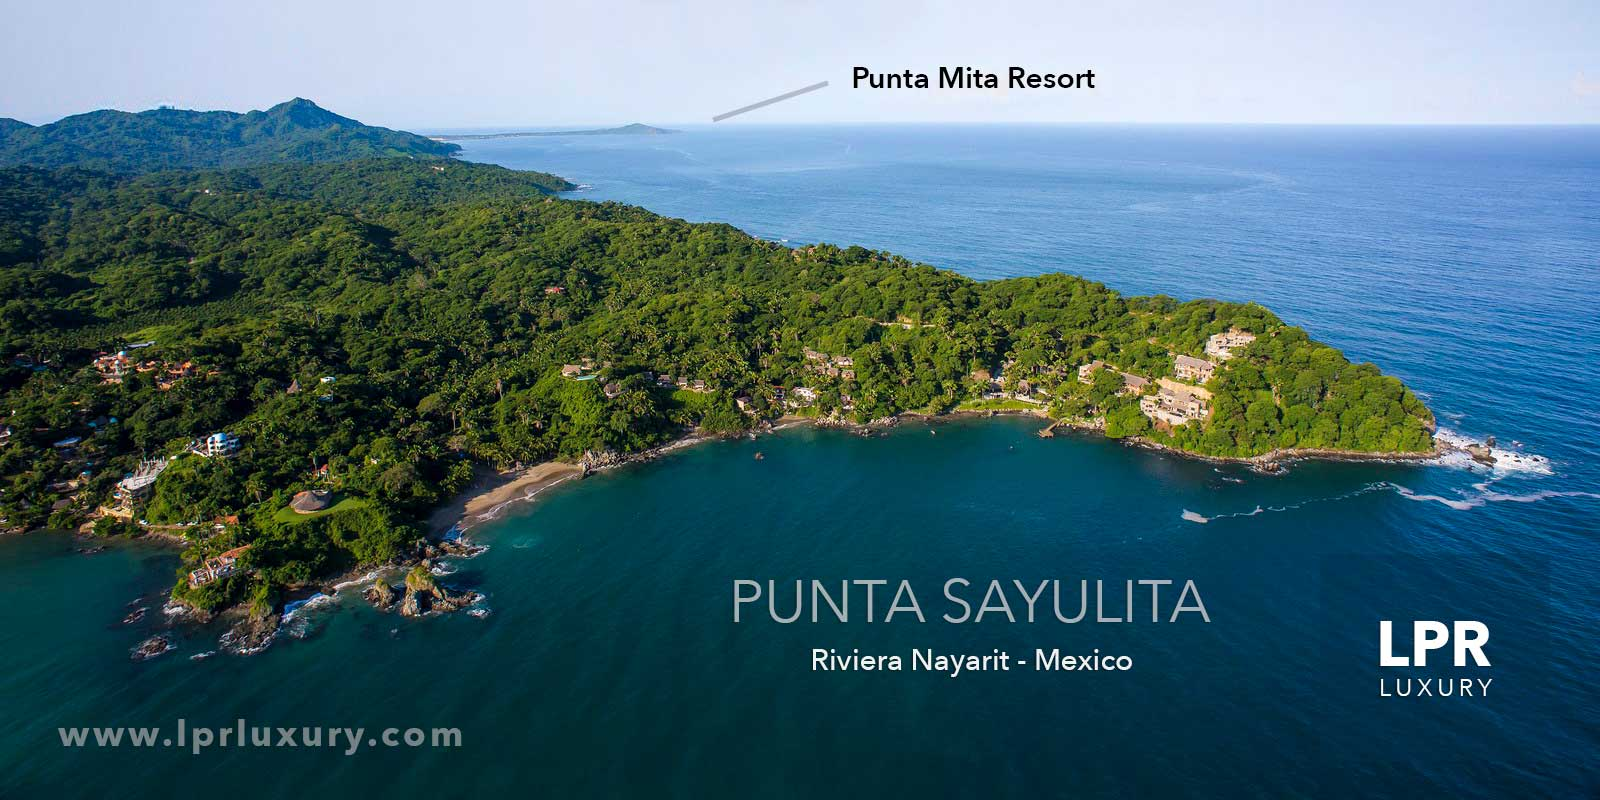 Punta Sayulita - Luxury Jungle Chic along the Riviera Nayarit - North of Puerto Vallarta, Mexico